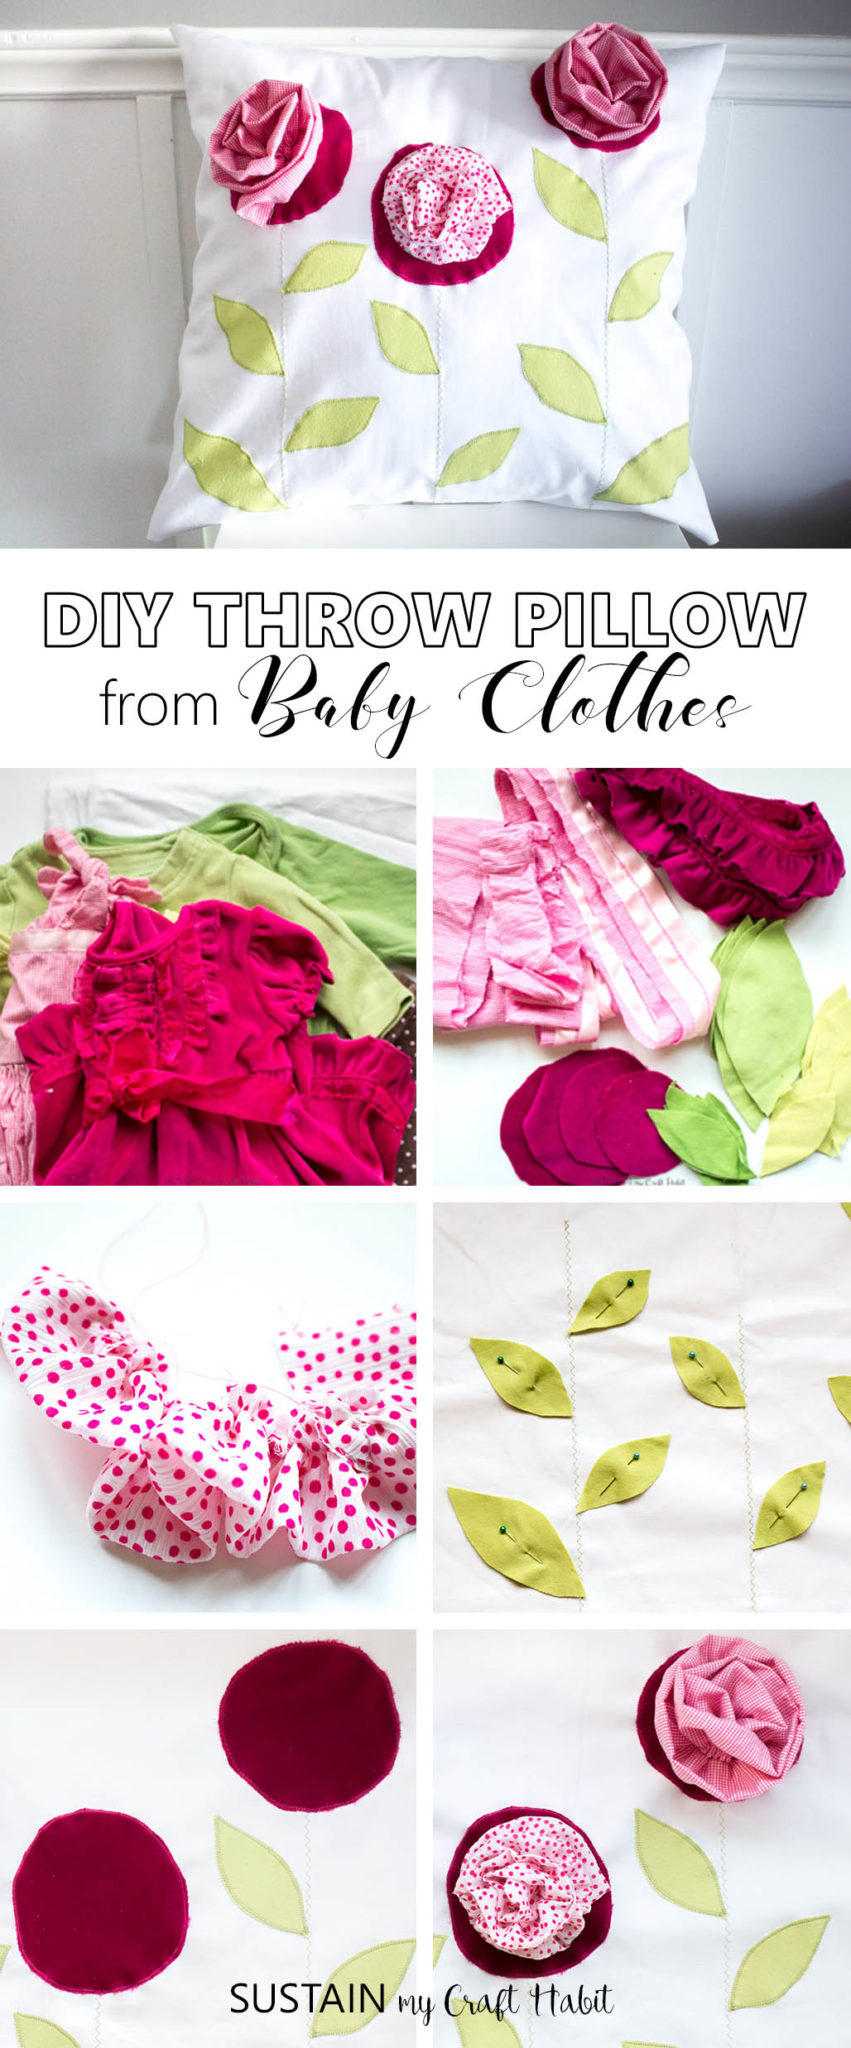 DIY throw pillow upcycled from outgrown baby clothing. This beautiful and bright home decor ideas would make a lovely keepsake or gift. Click through for the full tutorial and pattern.